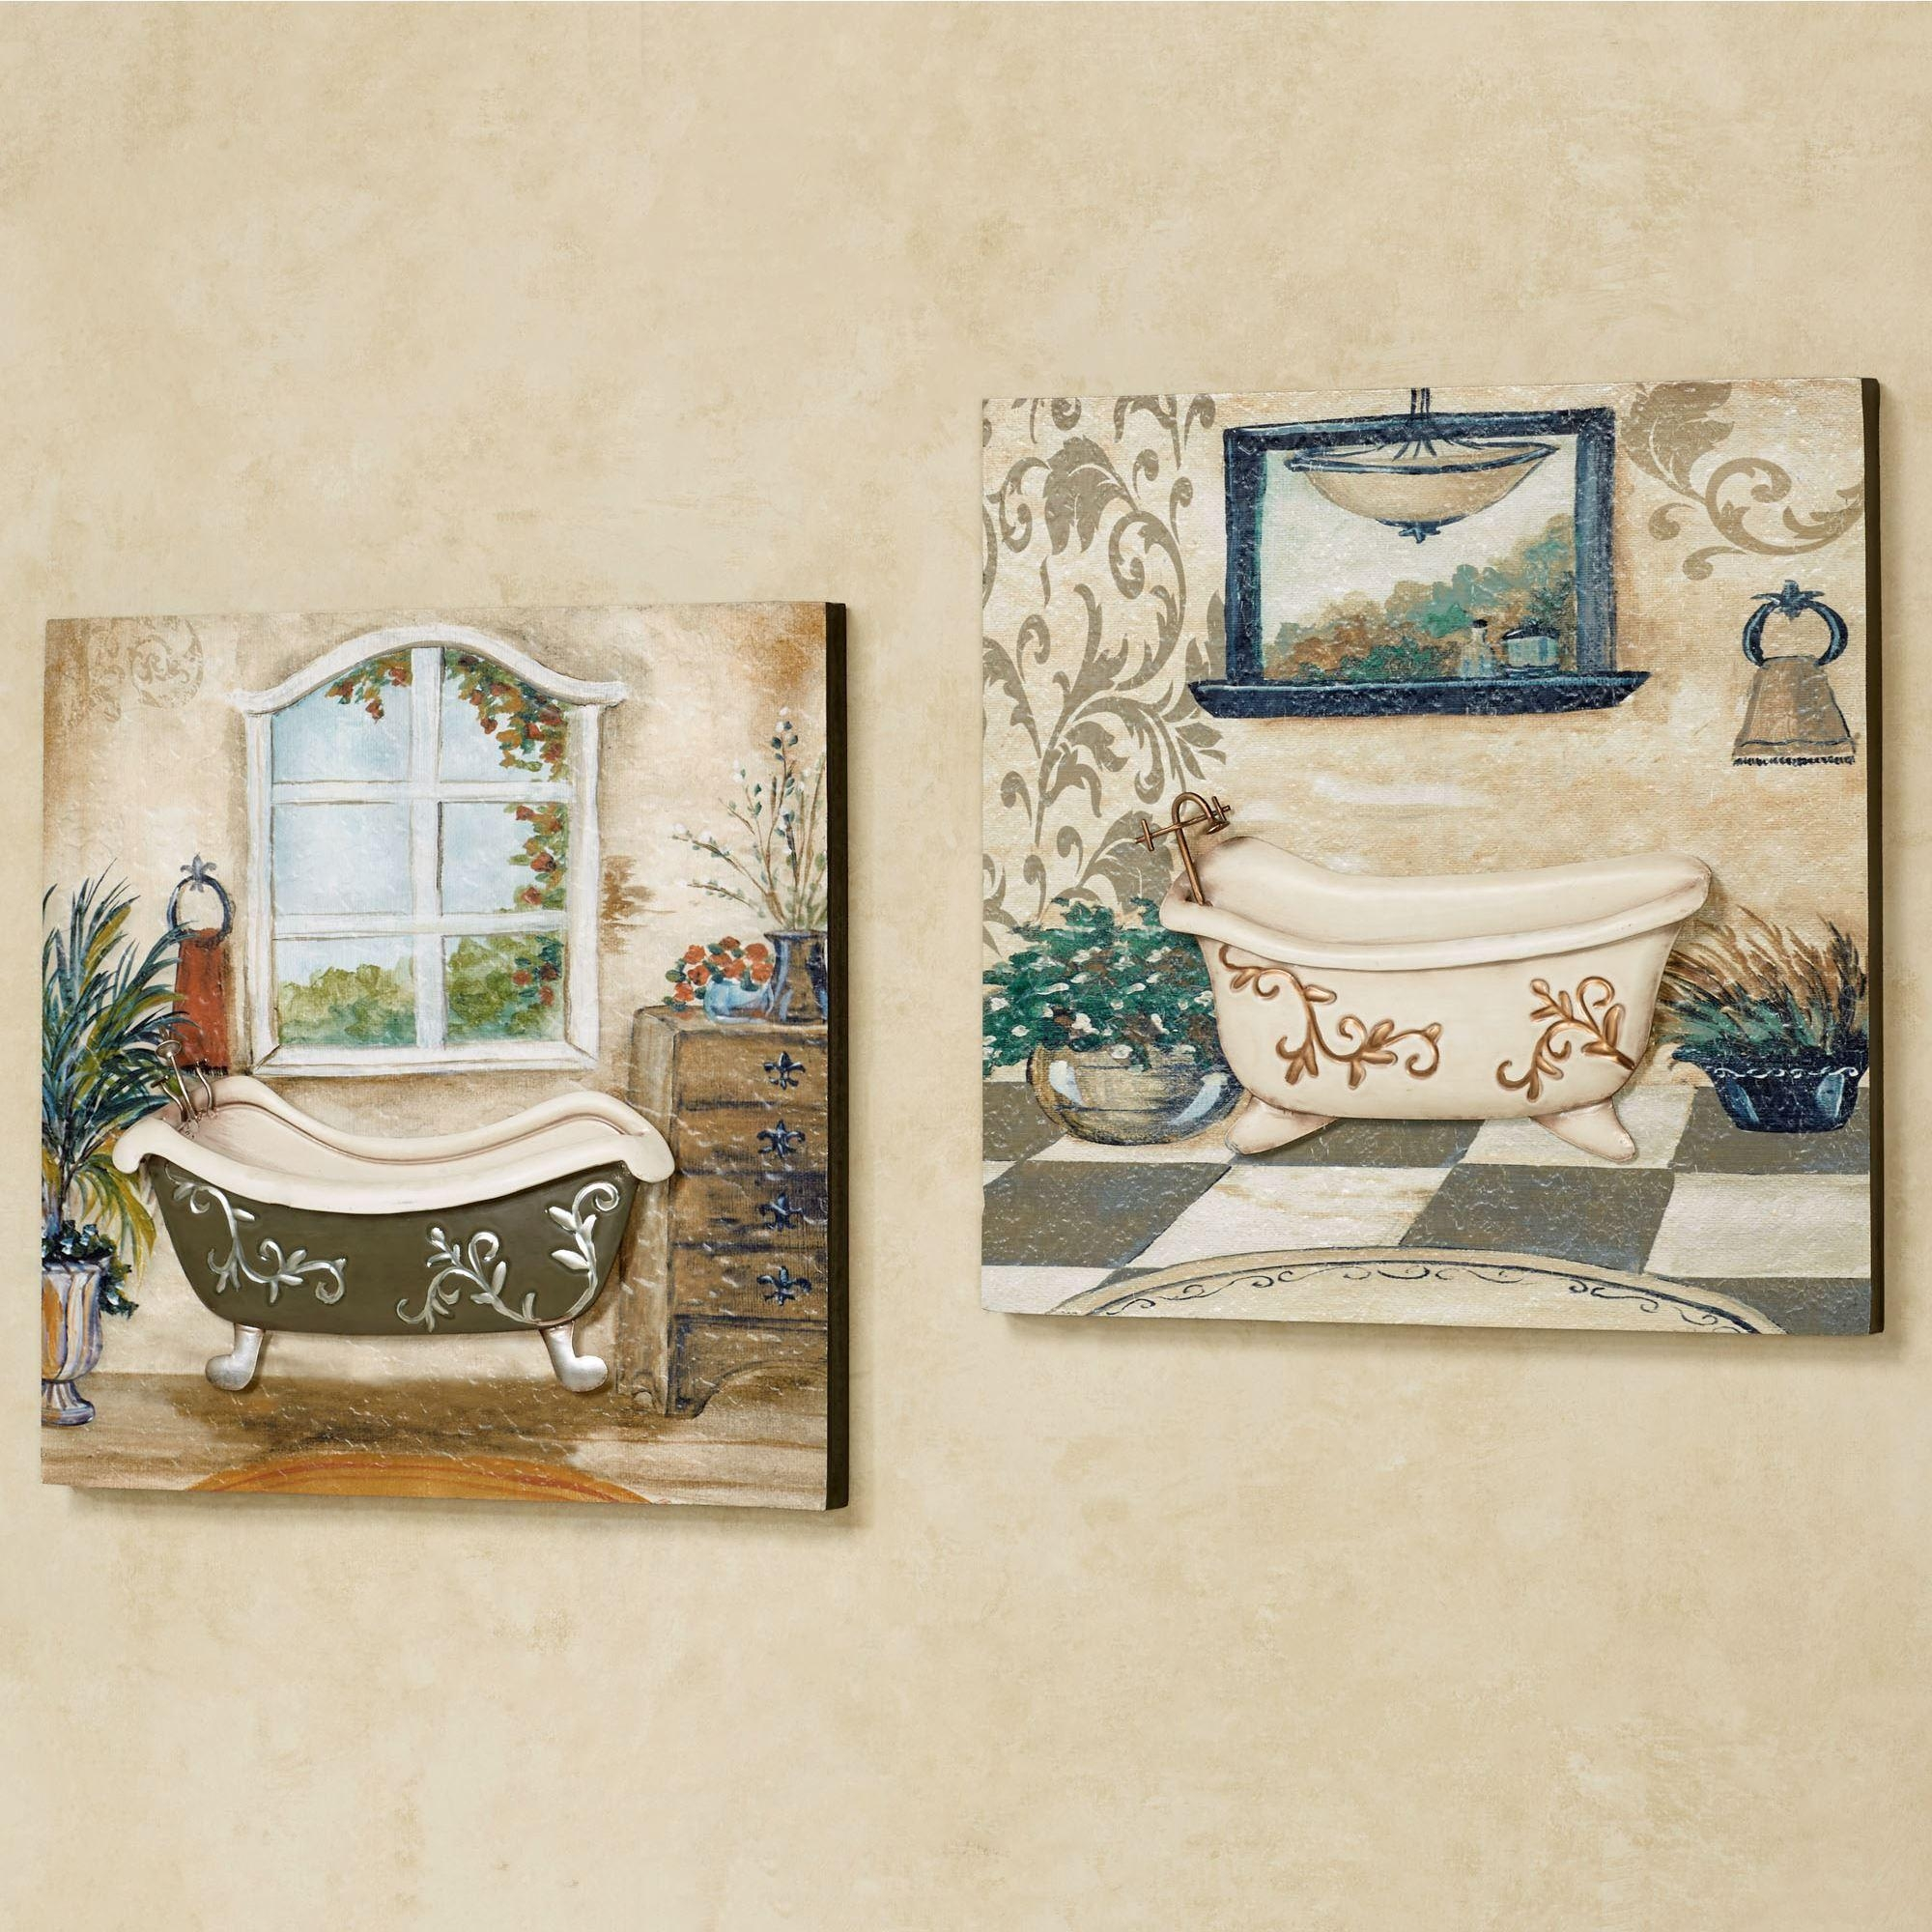 Italian Bathroom Wall Decor : Brightpulse Regarding Italian Wall Art For Bathroom (Image 11 of 20)